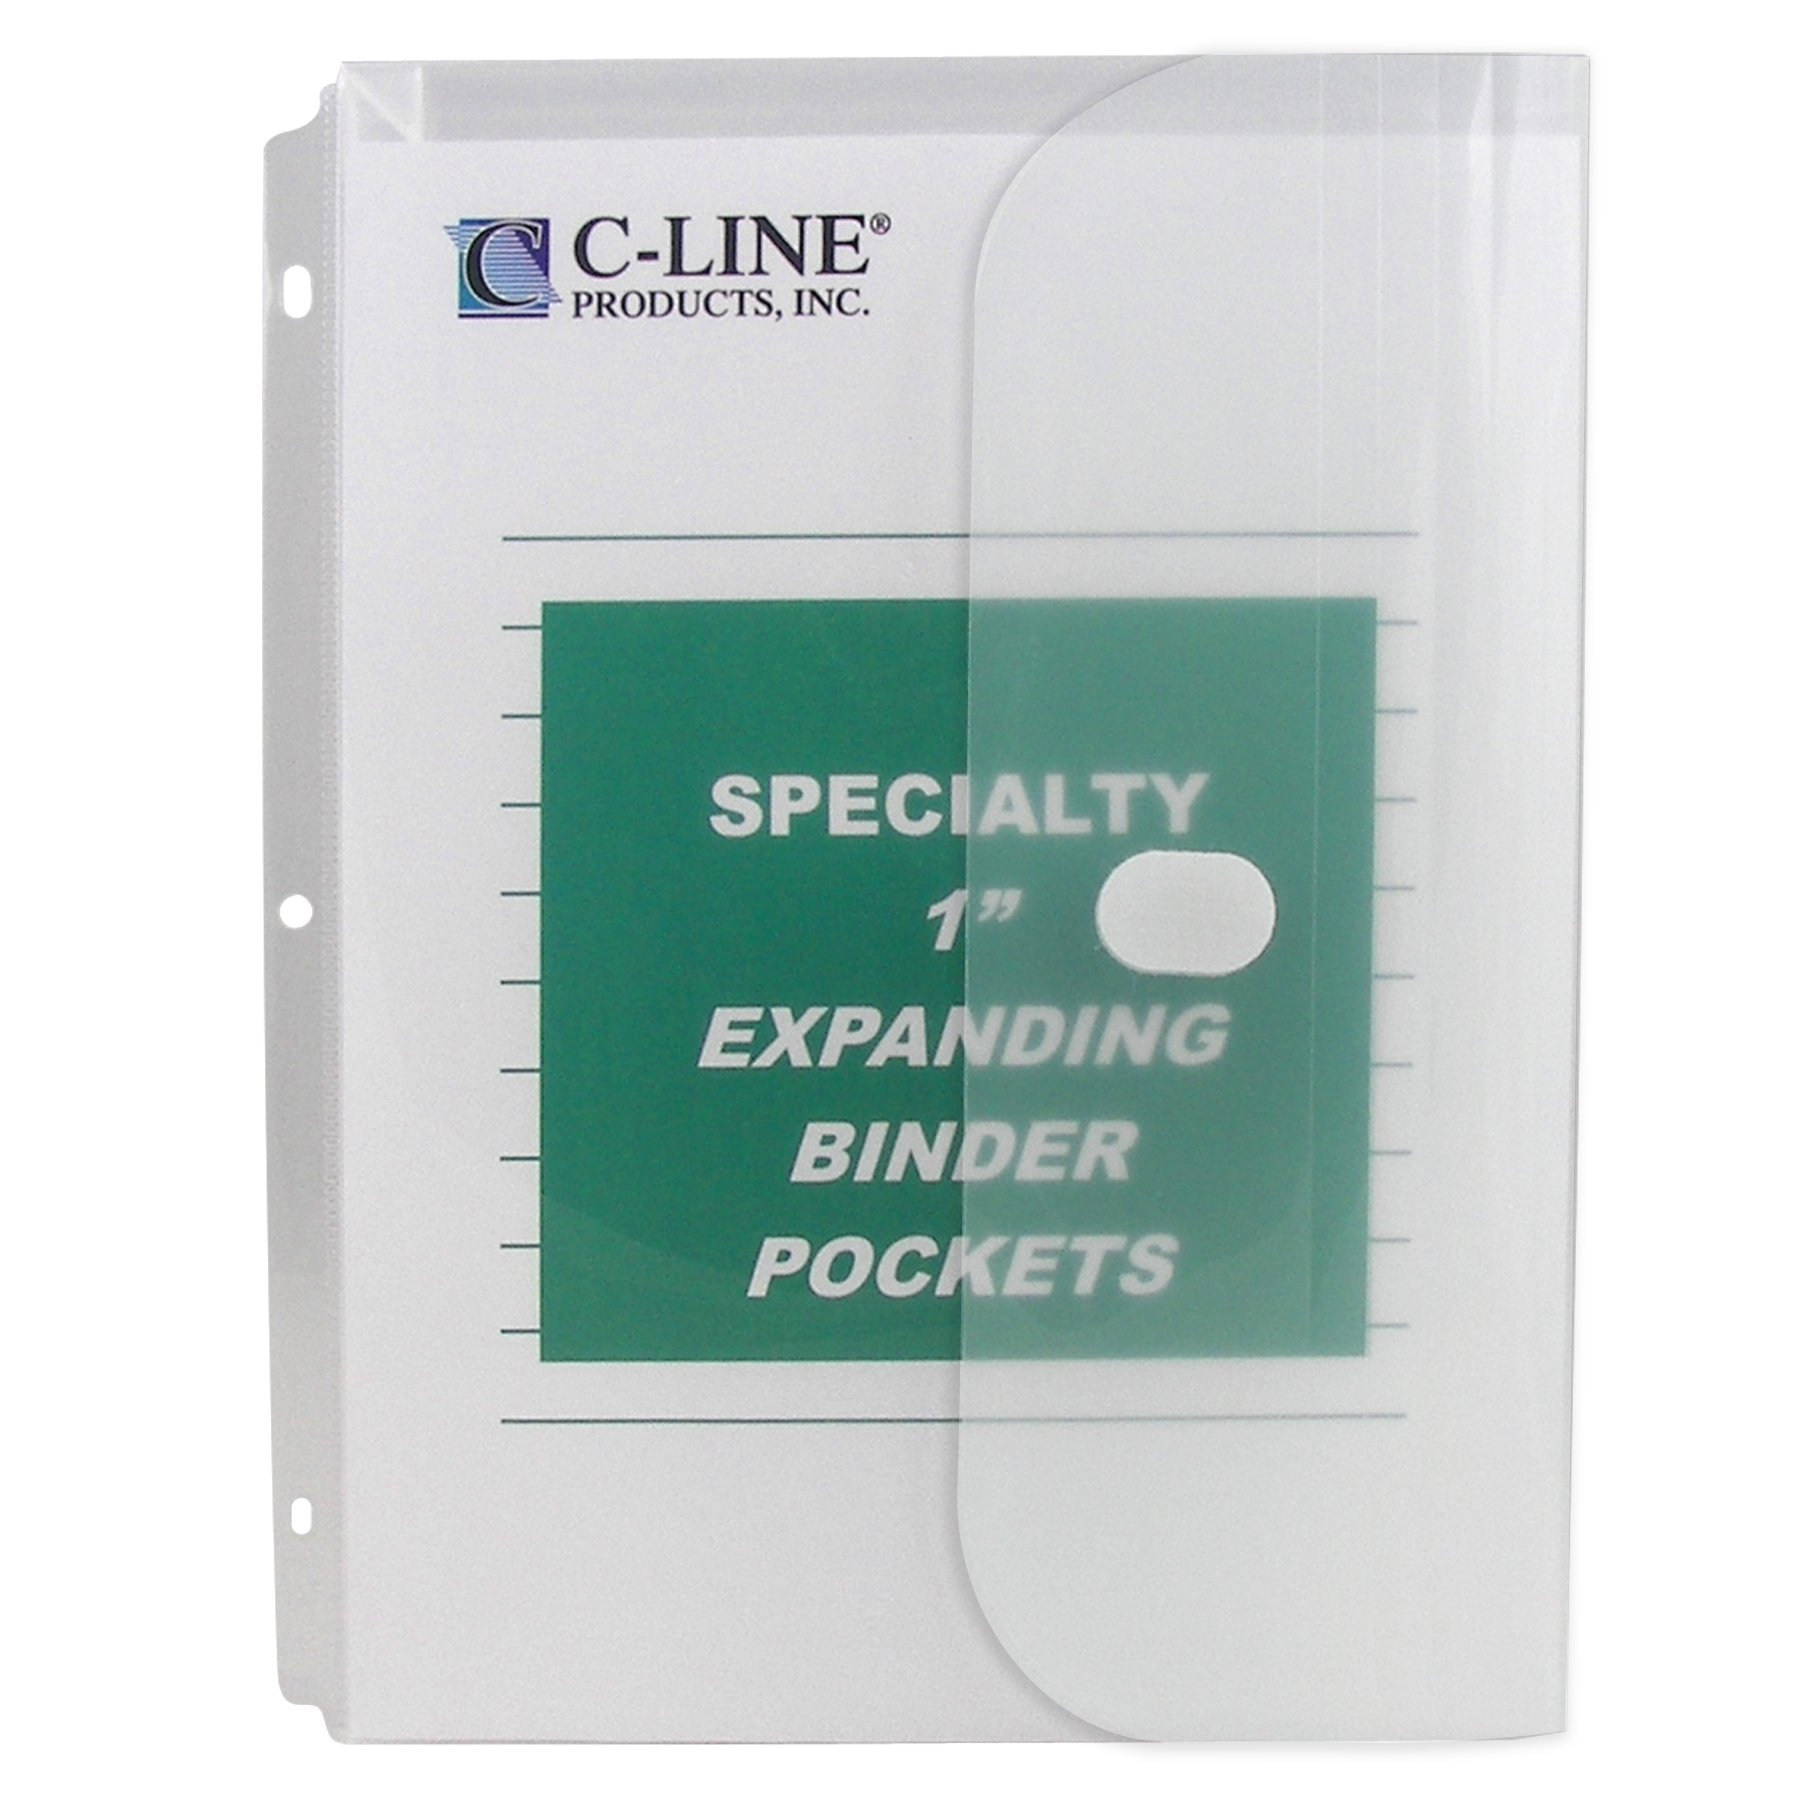 C-Line Biodegradable Acid-Free Poly Binder Pocket with 1-Inch Gusset, Side Loading, Clear, 10 Pockets per Pack (33747)